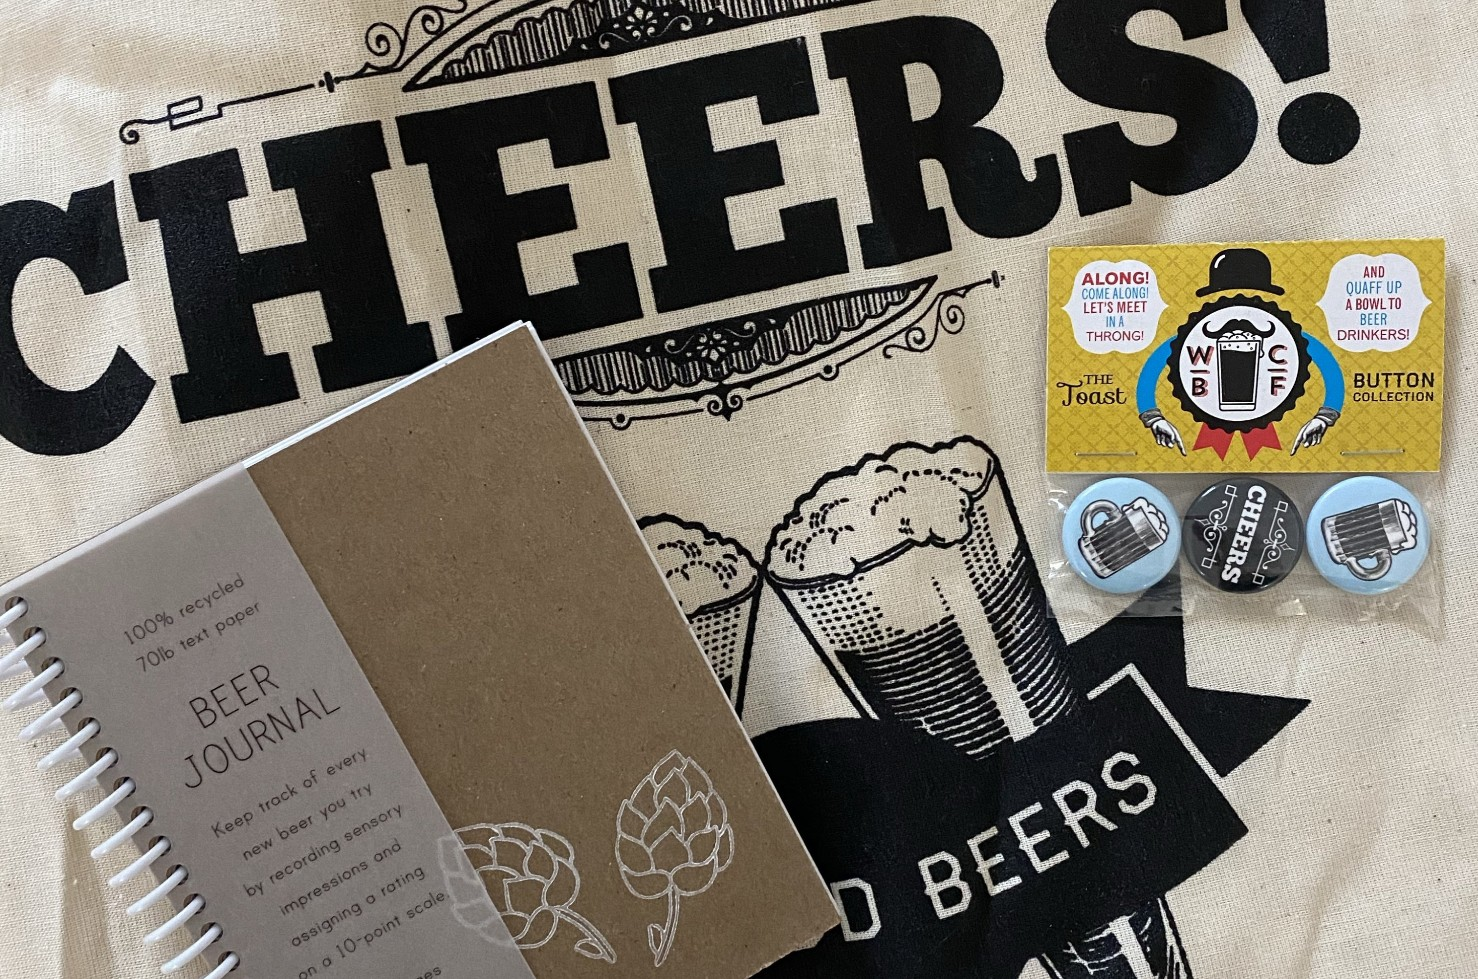 The Craft Beer Lovers Box from the Bevy Box.